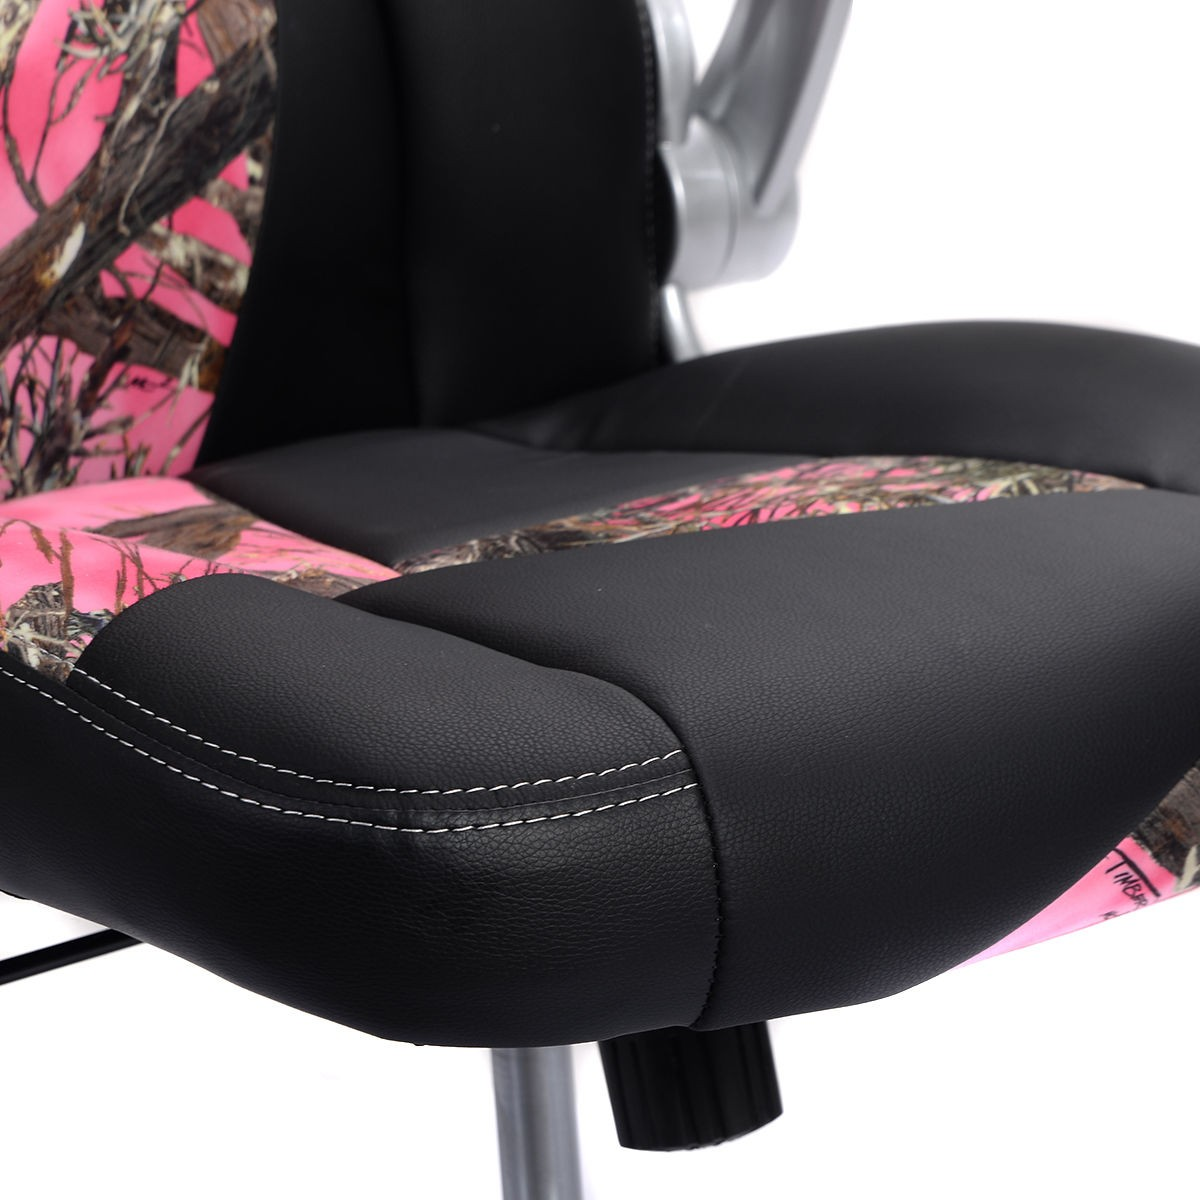 camo office chair best chairs irvington recliner new pu leather high back executive desk task